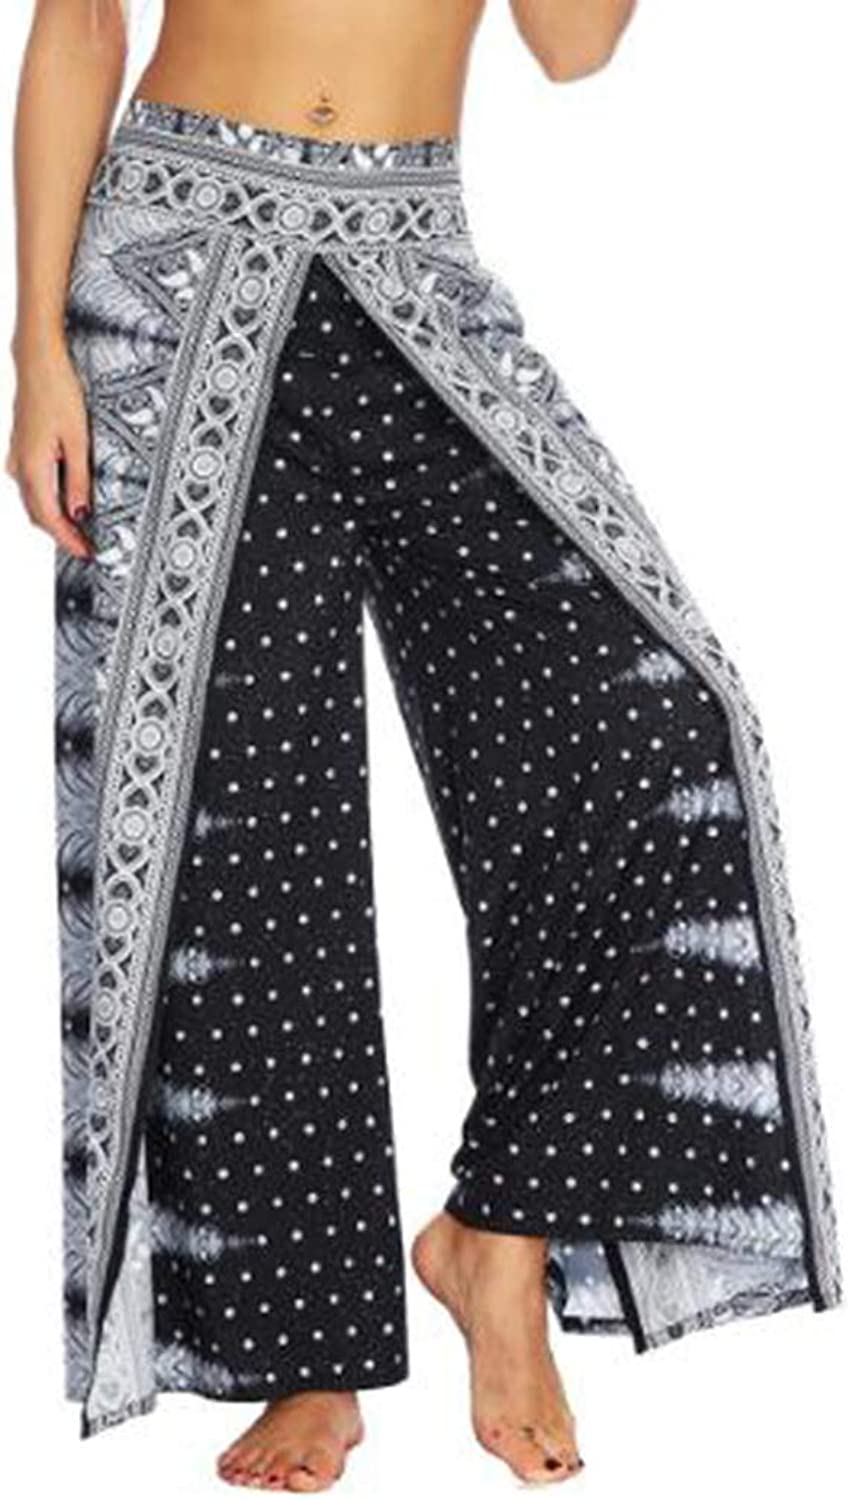 KEVIN POOLE Yoga Pants Relaxed Thin Wide Leg Suitable for Fitness Female Running Pants Women (Size   S M)